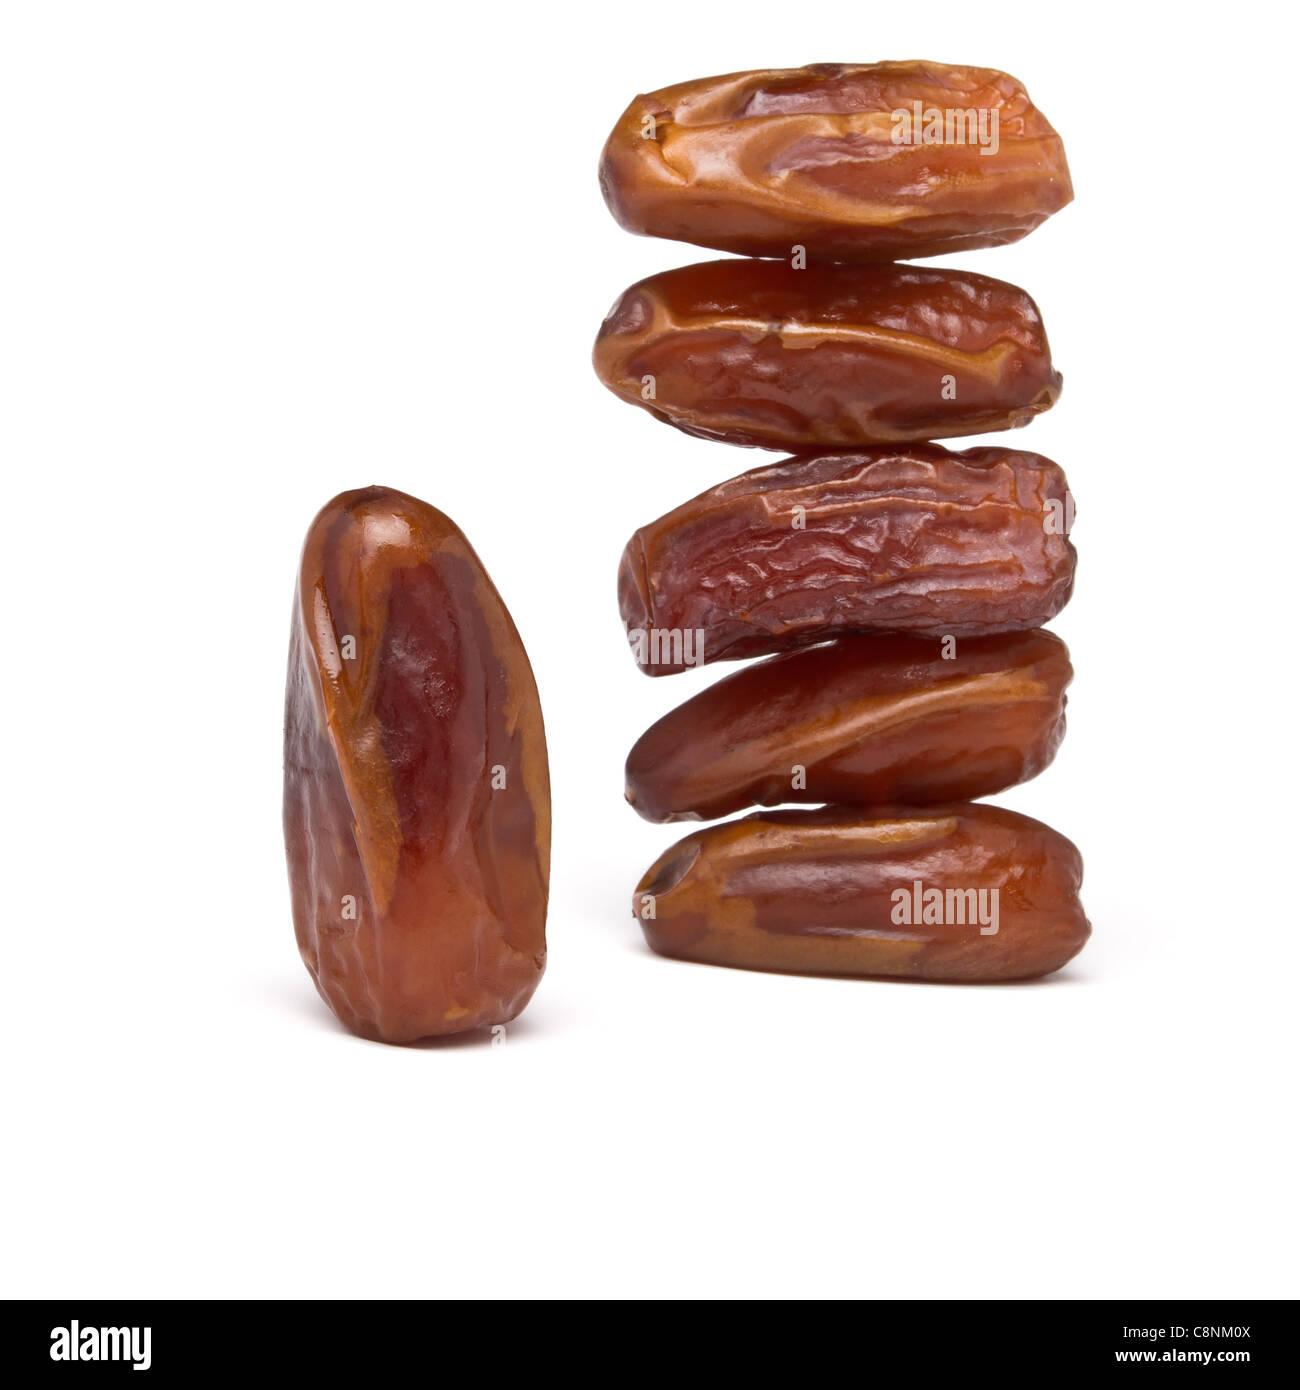 Abstract stack of date fruits on white background. - Stock Image